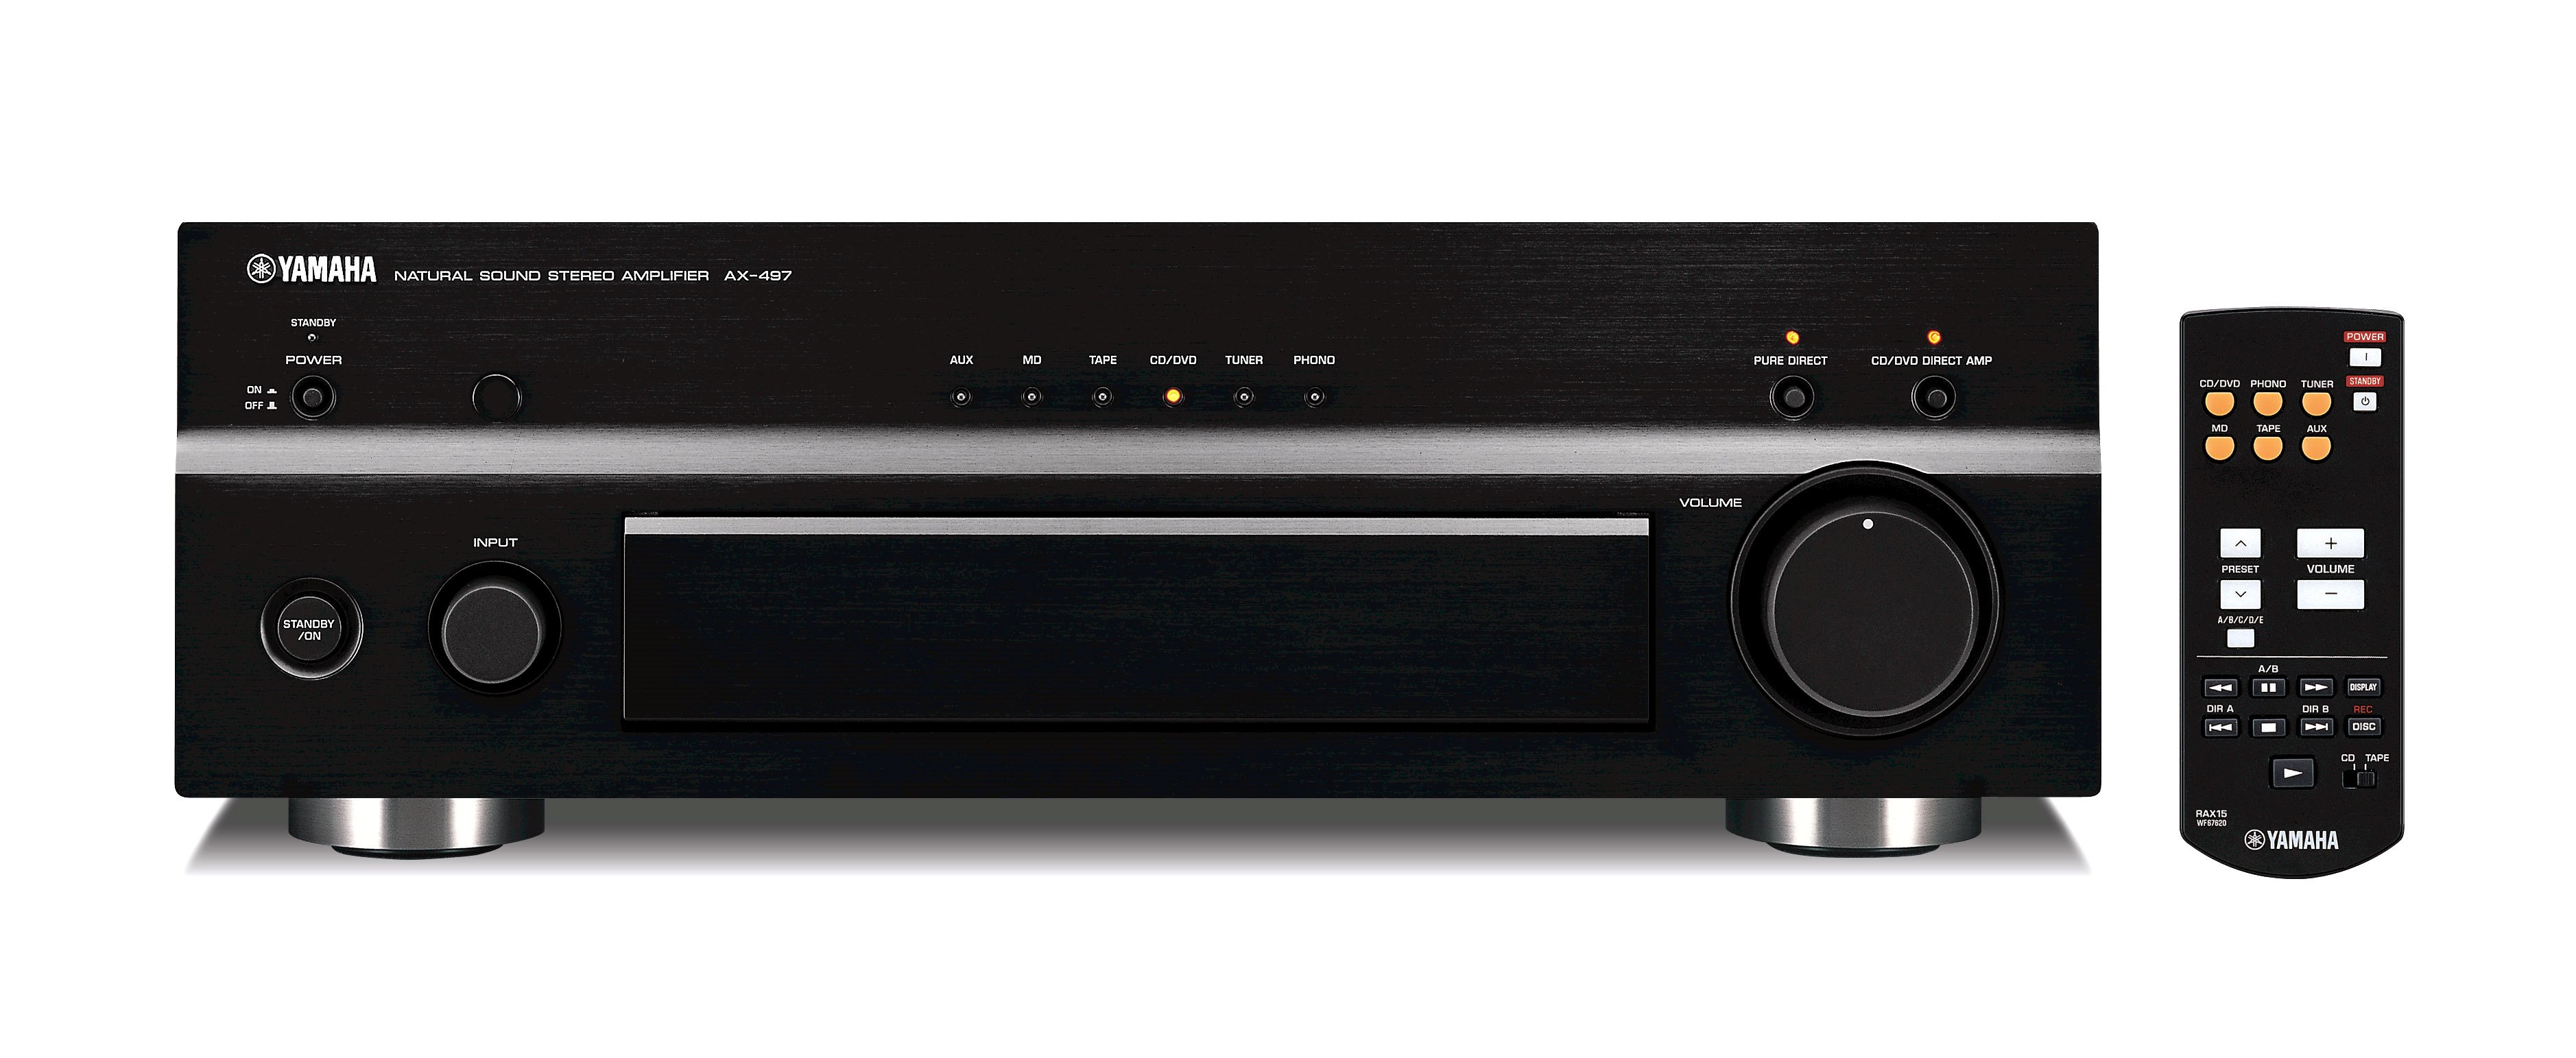 Ax 497 overview hifi components audio visual for Yamaha pure direct